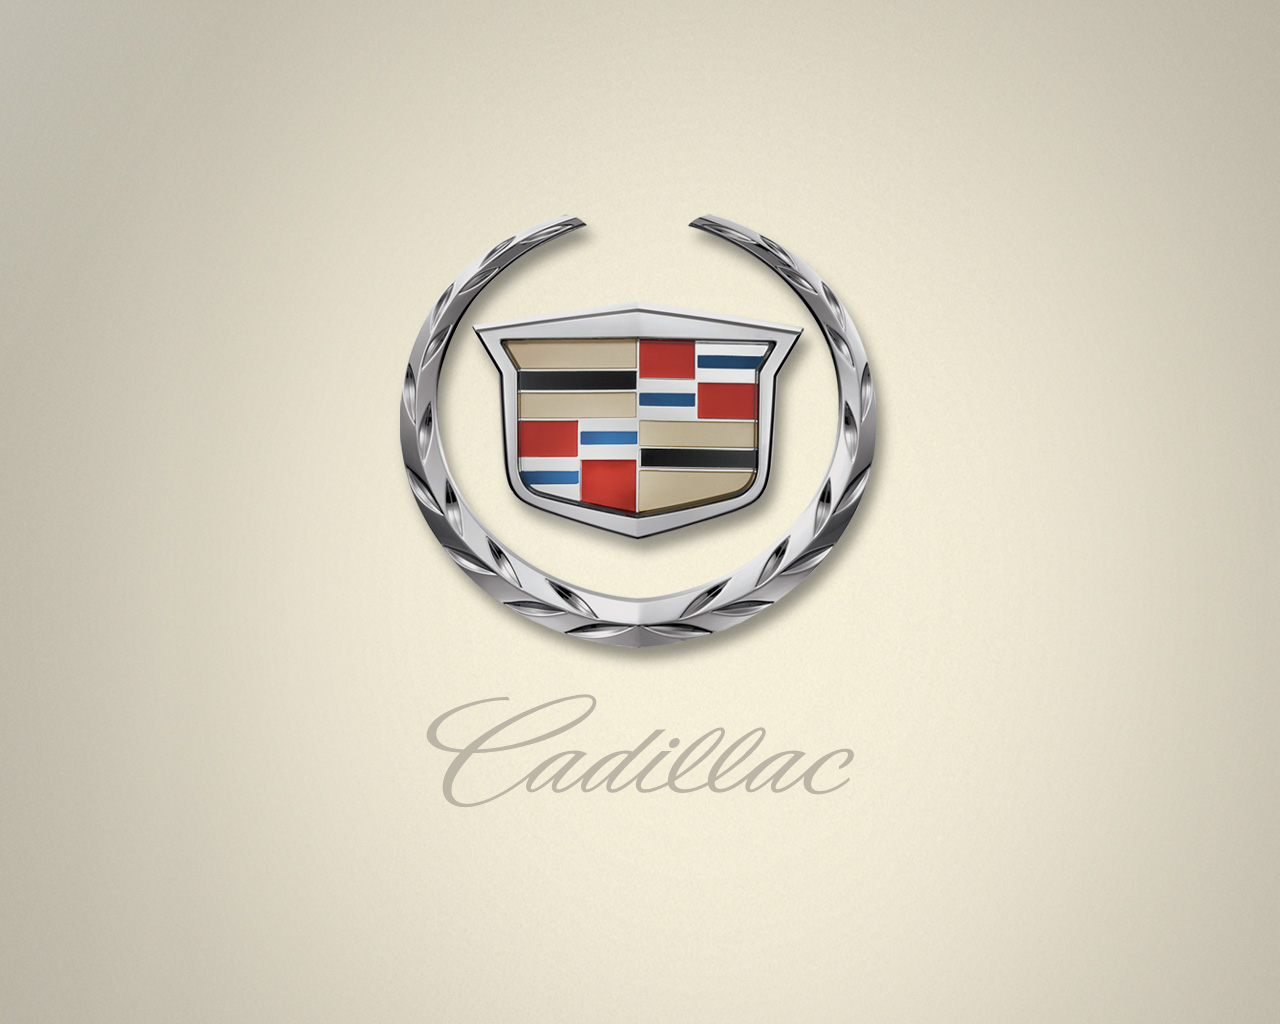 Wallpaper Cars Cadillac